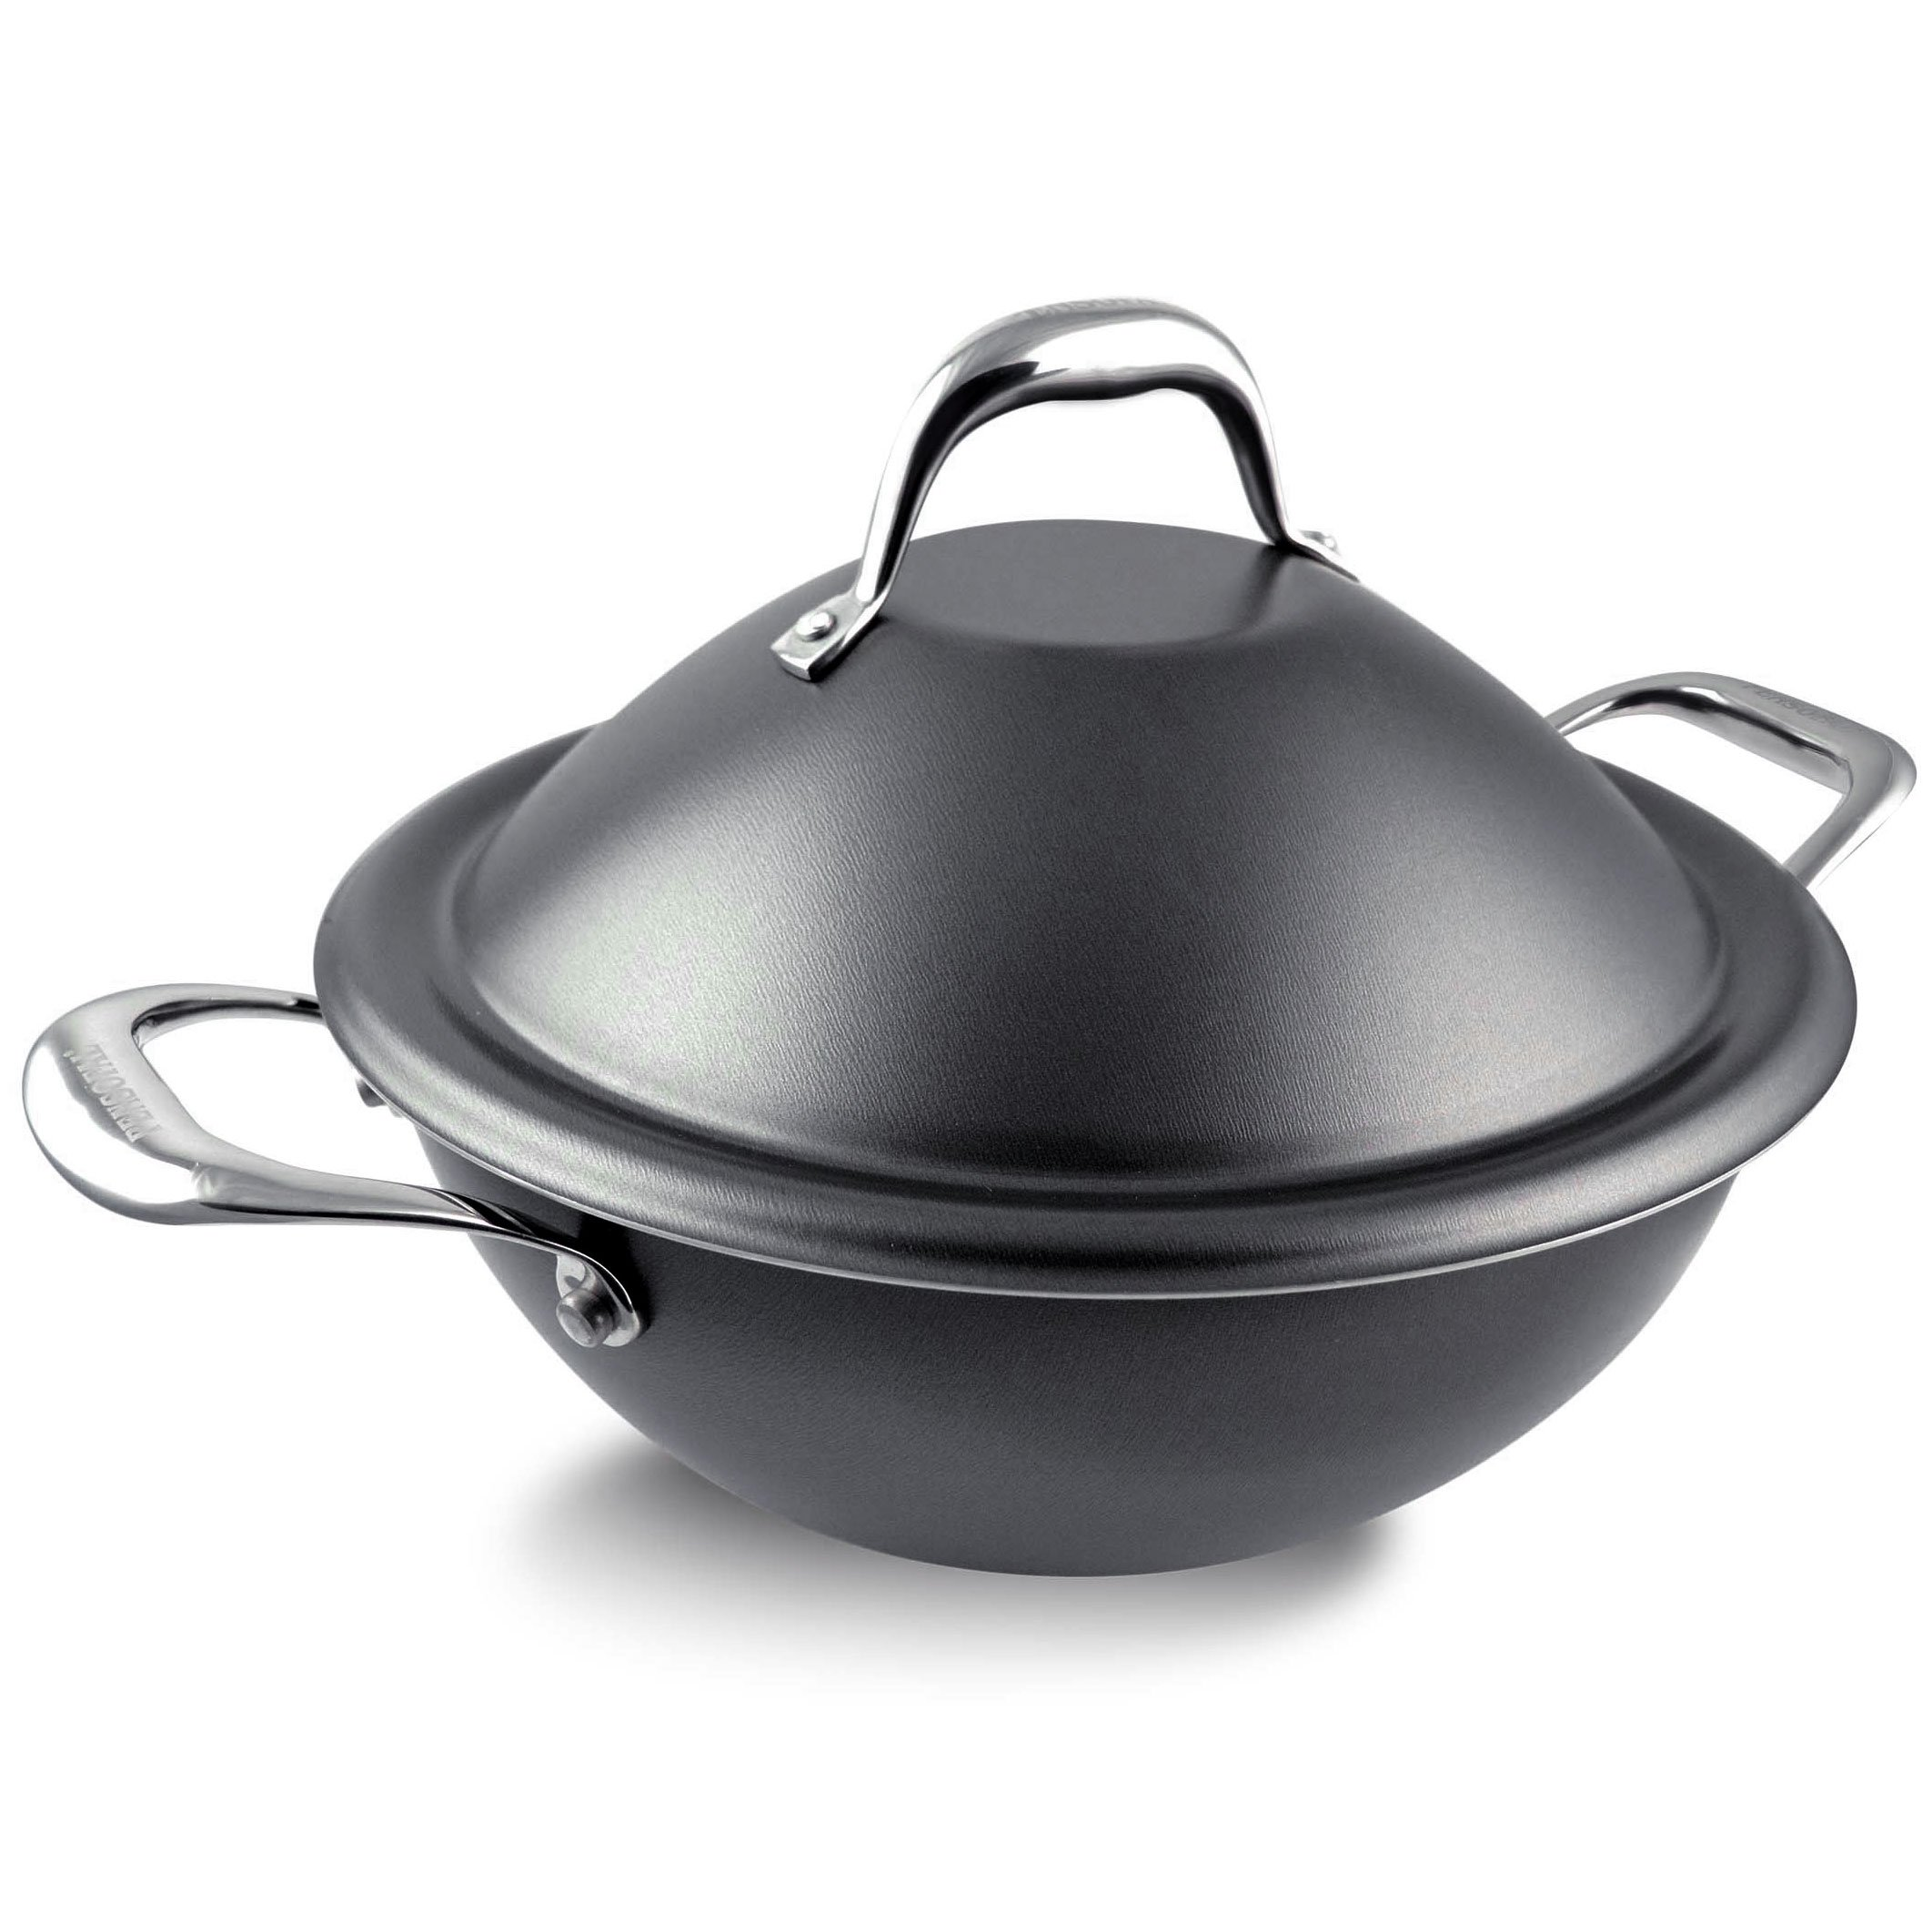 Pensofal Pen 5517 Invictum Professional Vapsì Wok 2 Handles Andtrayandforkanddome Lid, Also for Steam Cooking - Diameter 24 cm, Grey by Pensofal